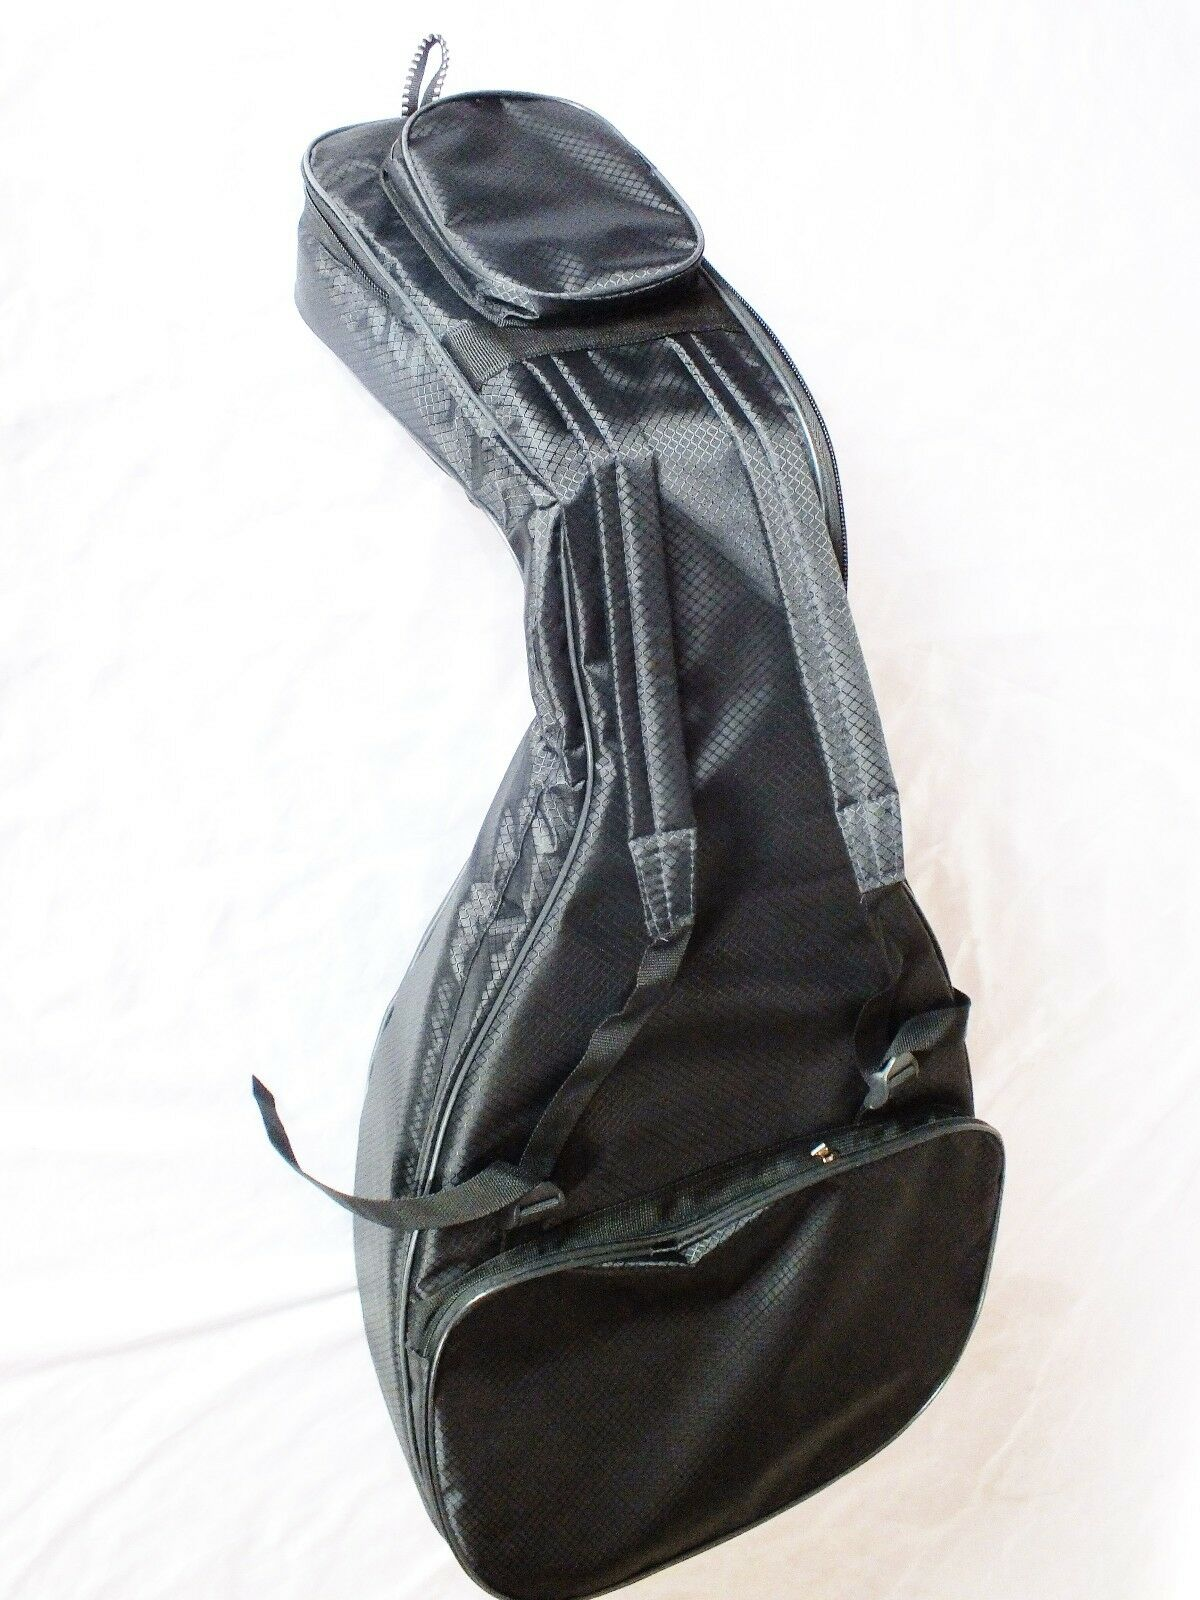 UNOSELL    PREMIUM  QUALITY OUD UD GIG BAG for OUD UD